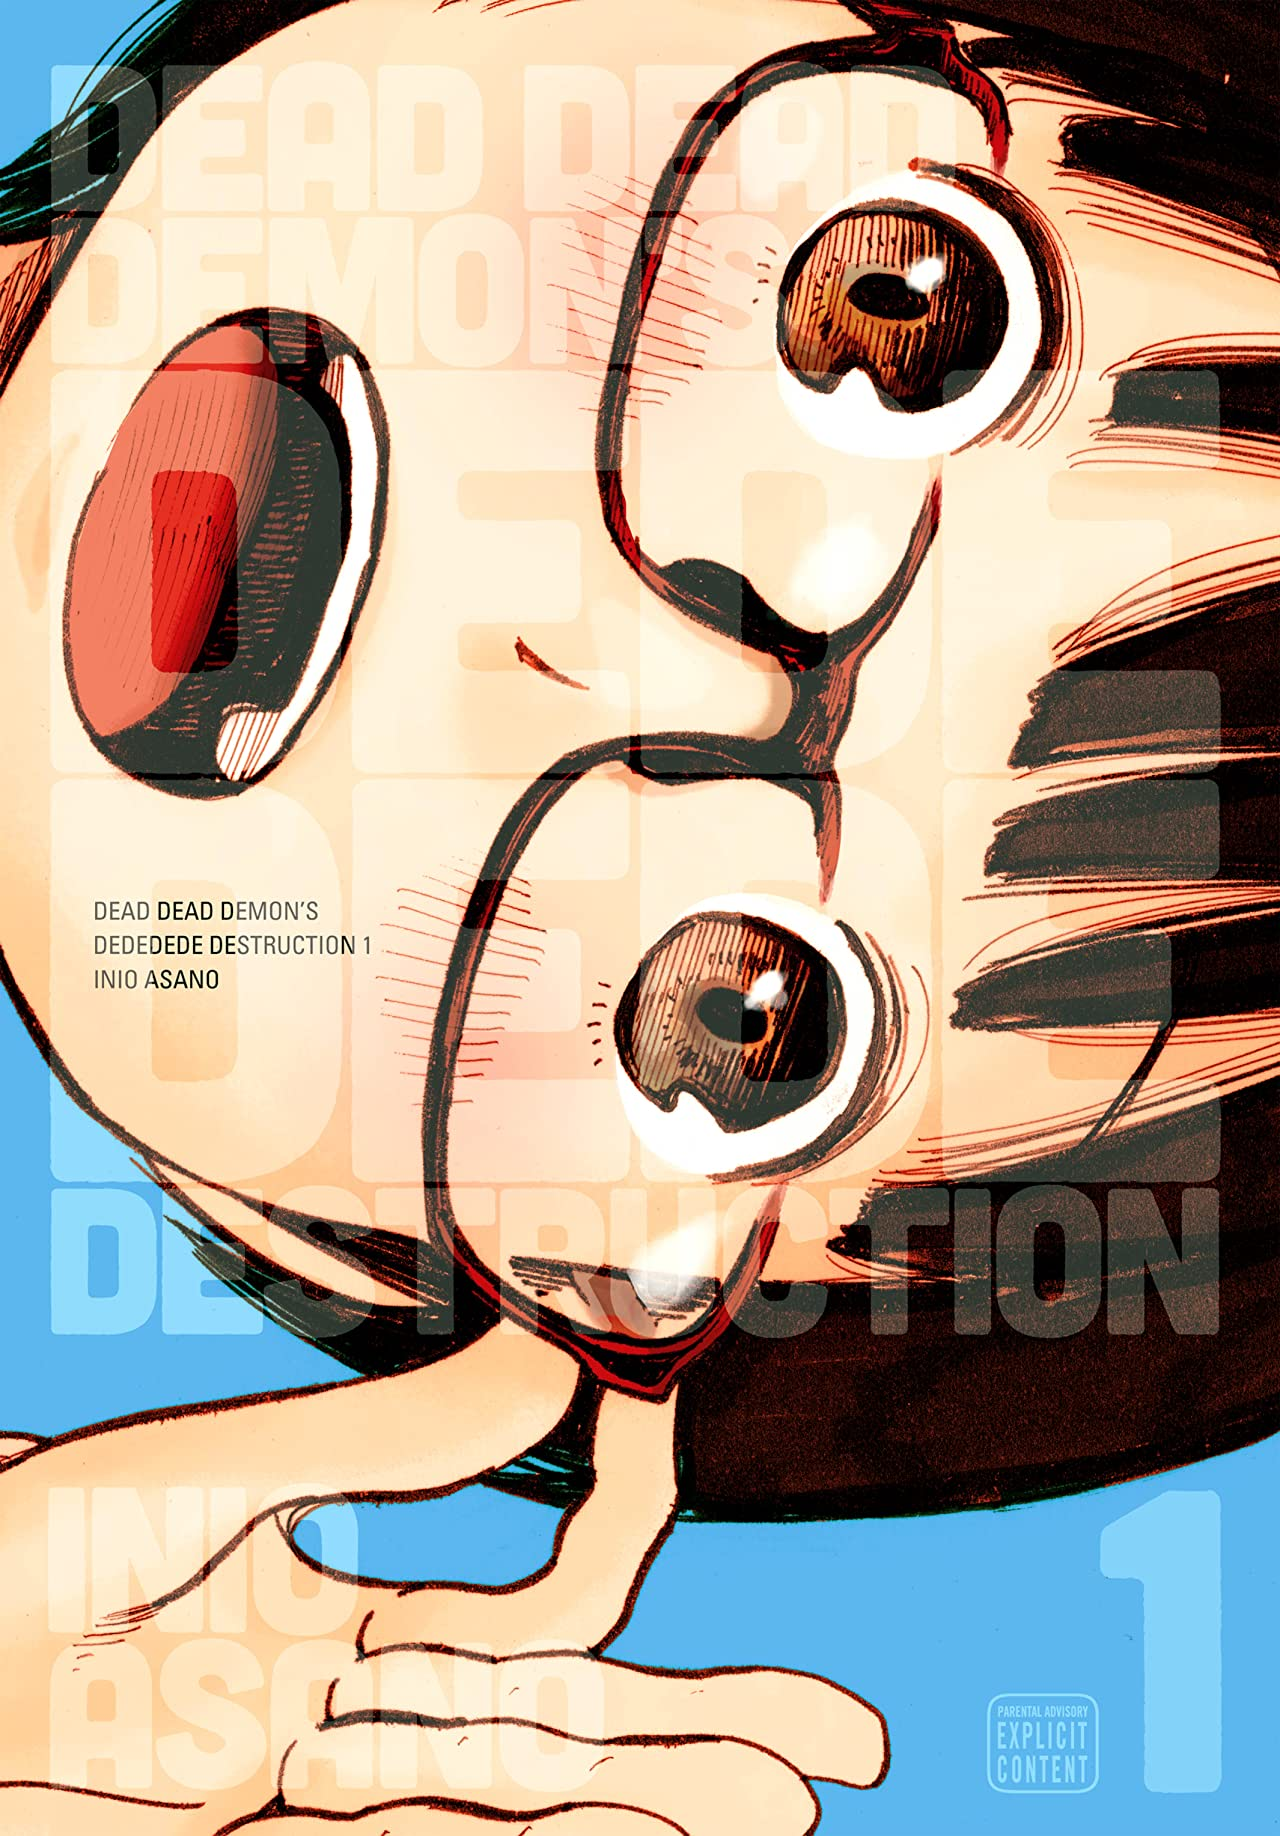 Dead Dead Demon's Dededede Destruction Vol. 1